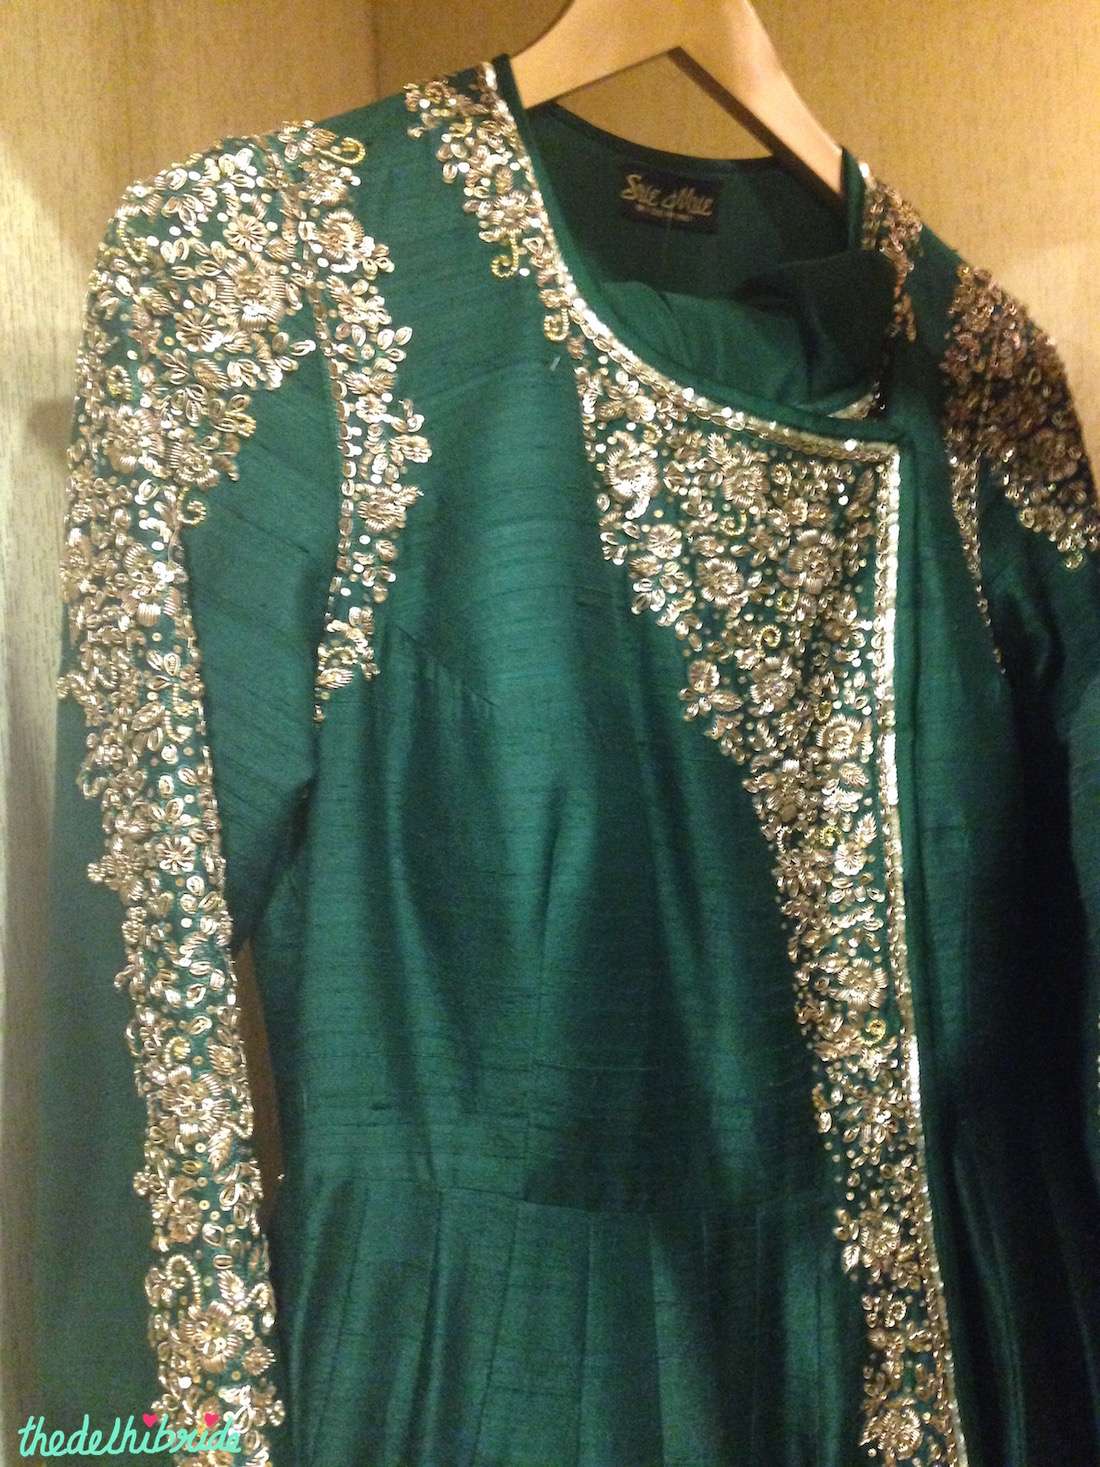 c79066e46d636 emerald-green-anarkali-with-silver-embroidery-sue-mue-store-visit.jpg